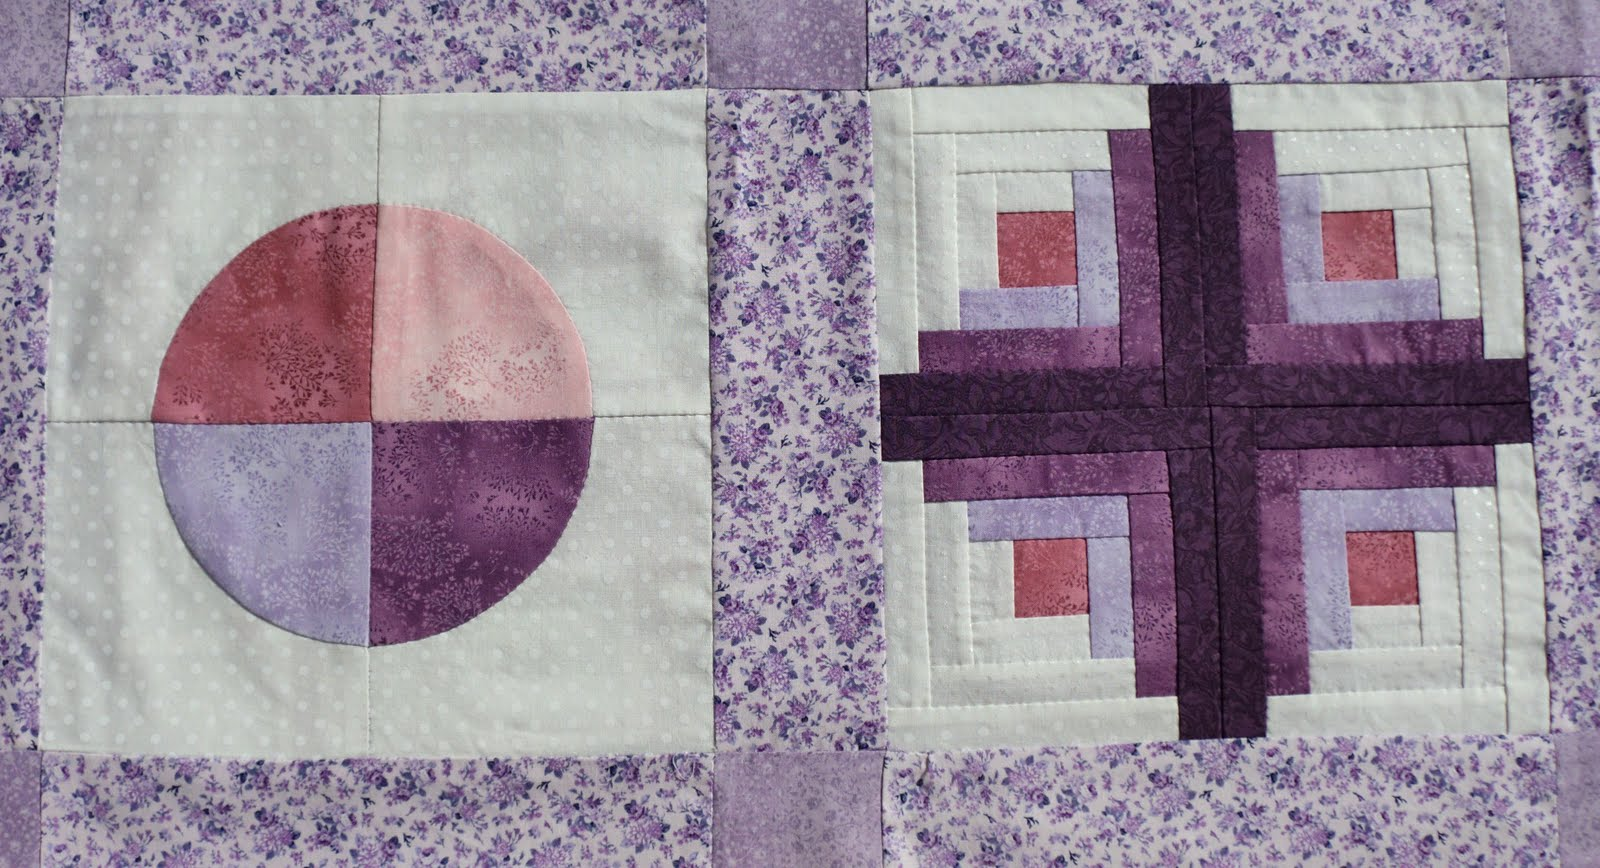 Mi Colcha De Patchwork Y Demás Cosillas Aprender Manualidades Es . Full resolution‎  image, nominally Width 1600 Height 868 pixels, image with #7C3F4D.